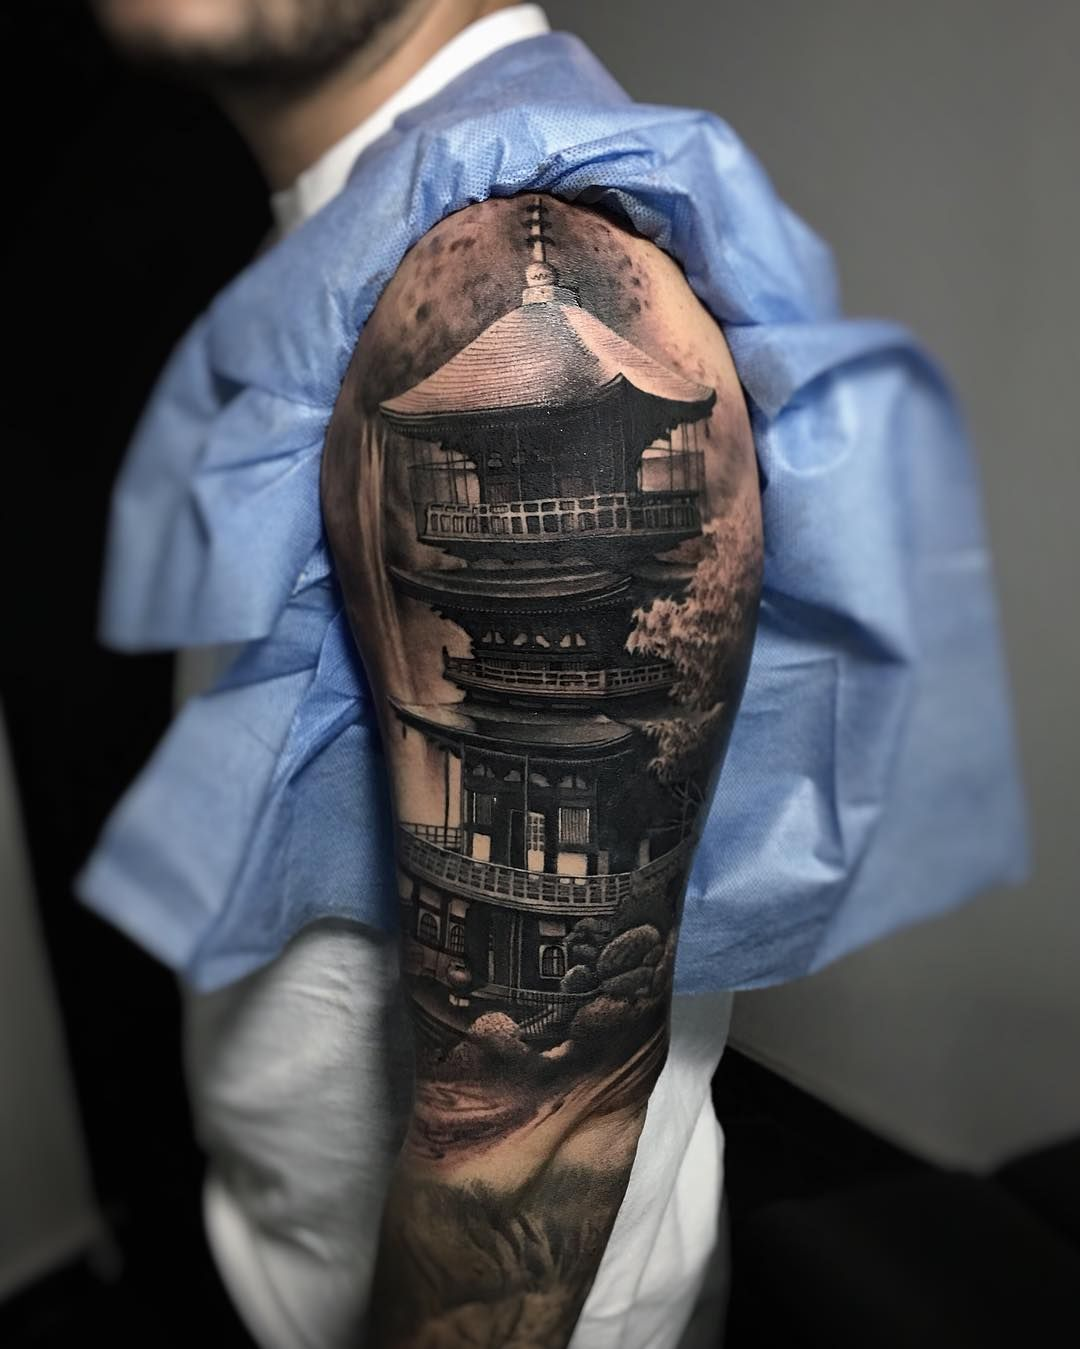 Tattoo artist Emersson Pabon